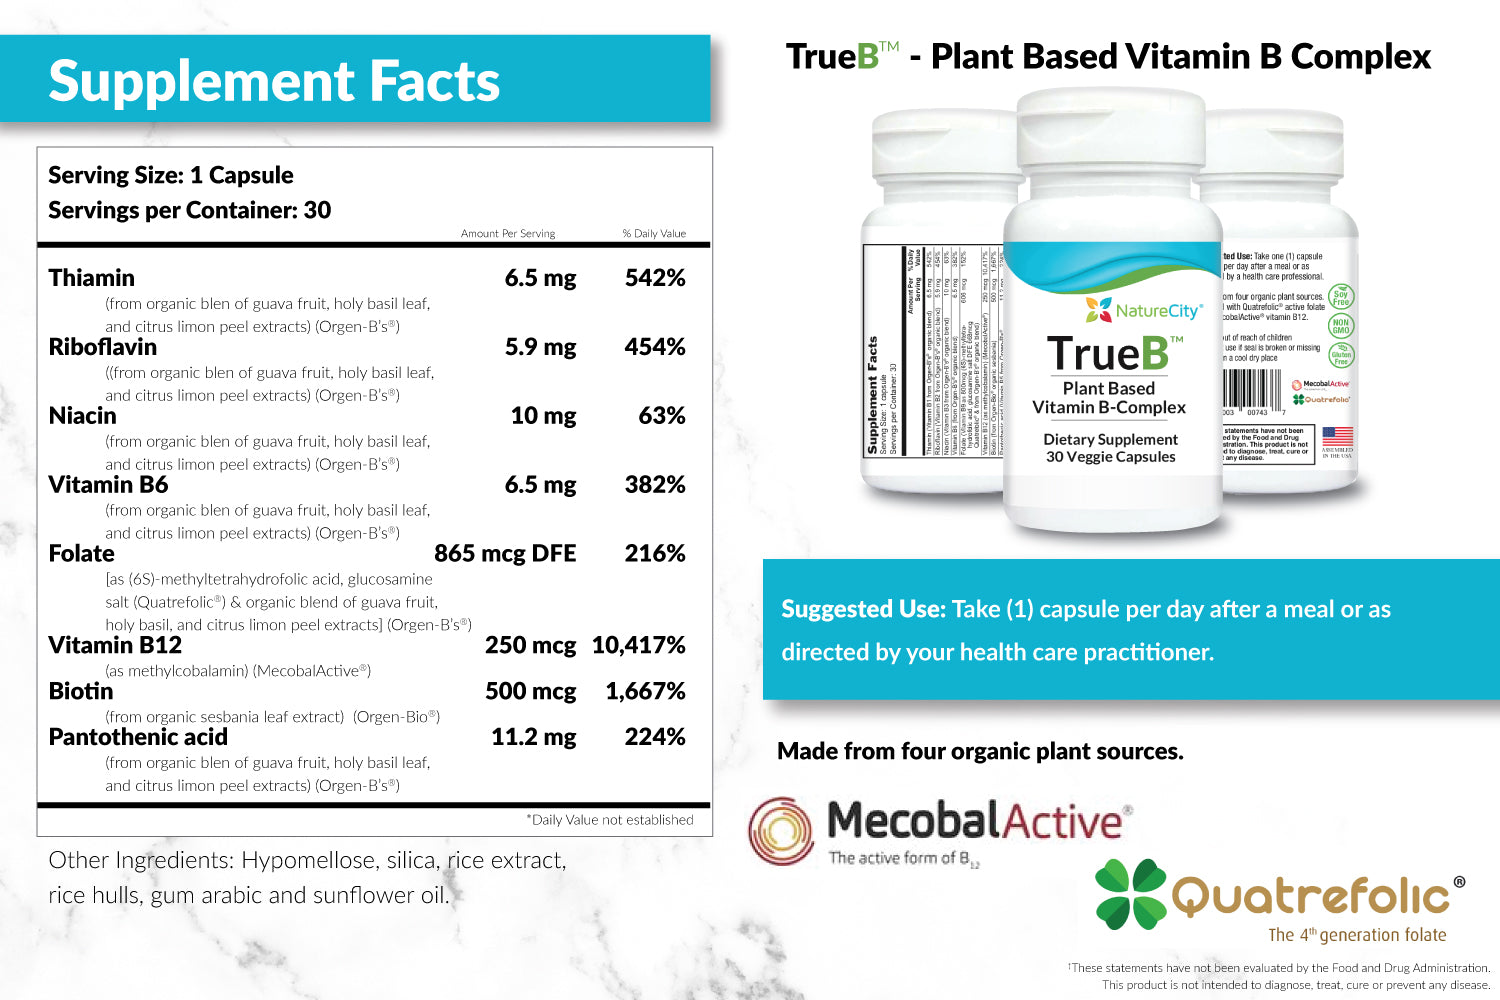 TrueB Vitamin B Complex Supplement Facts and Suggested Use